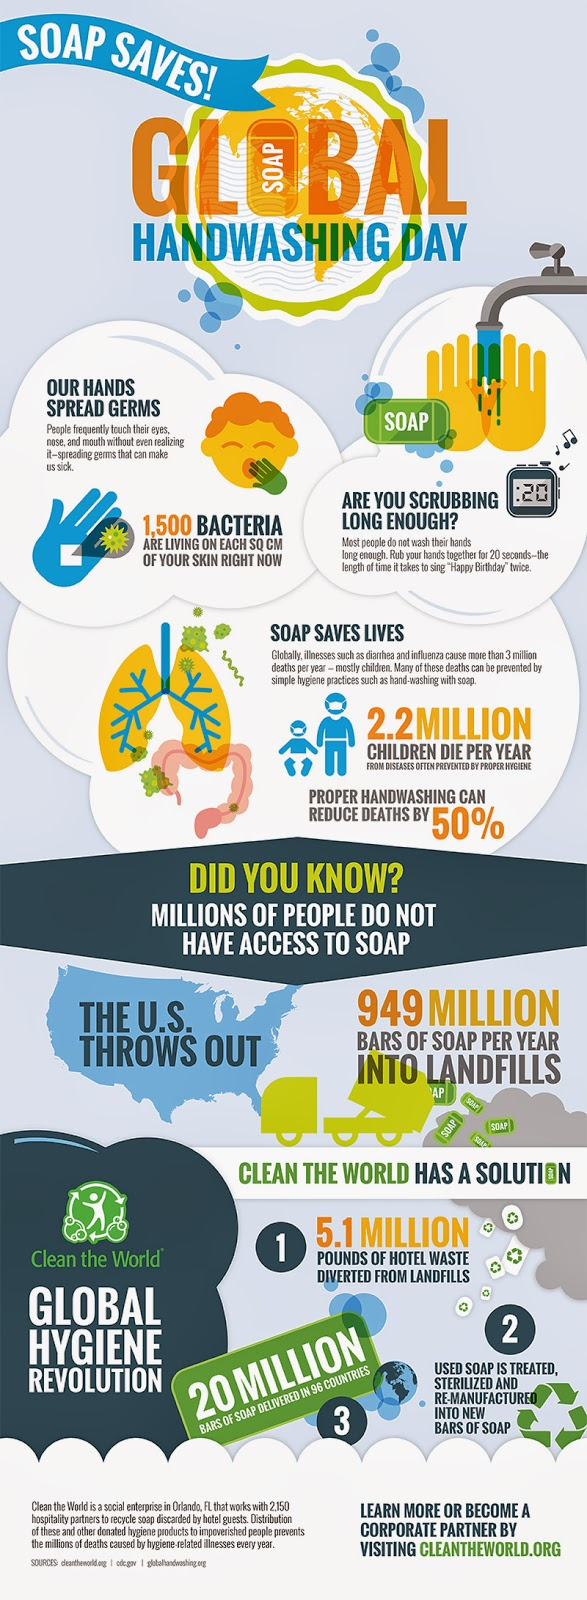 Graphic shows how hand-washing with bar soap can stop the spread of illness and disease